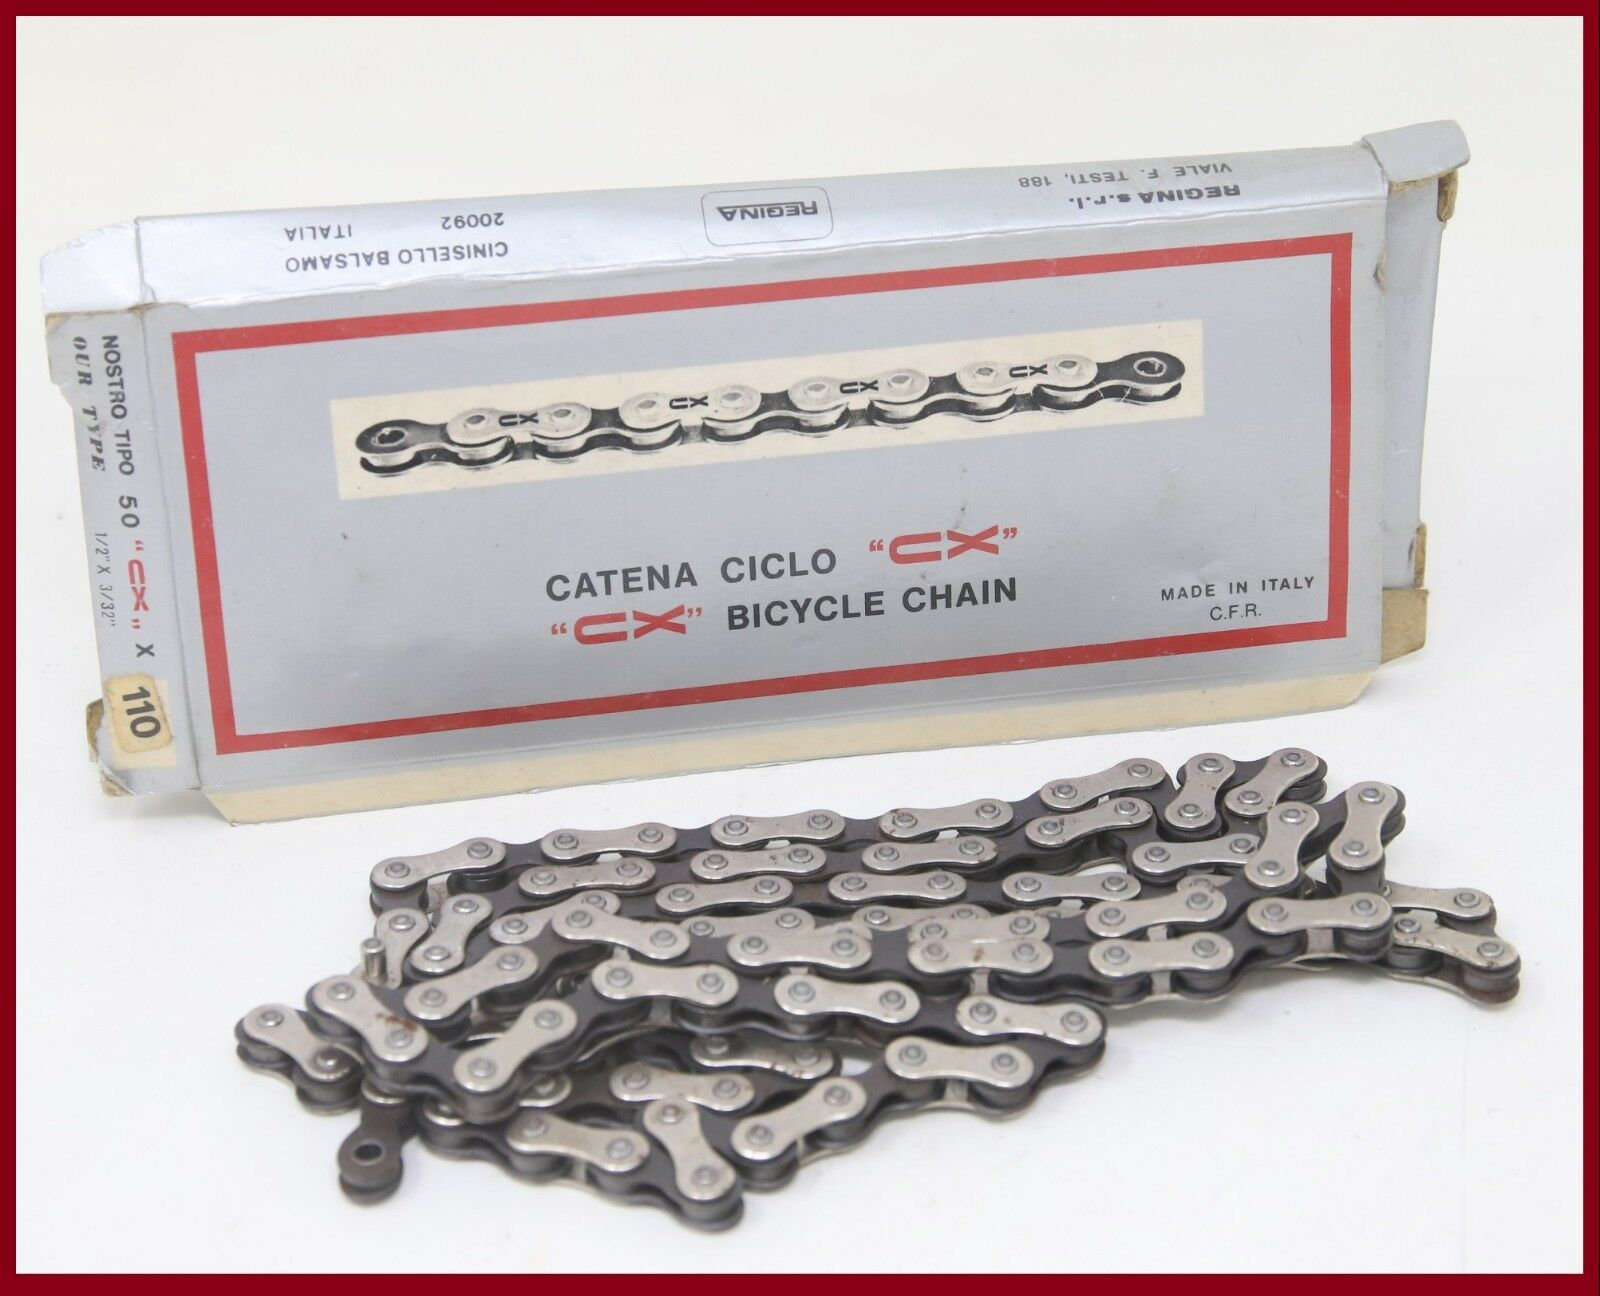 NOS REGINA EXTRA CX 1 2 X3 32  CHAIN 70s VINTAGE 5 6 7 SPEED CAMPAGNOLO RECORD